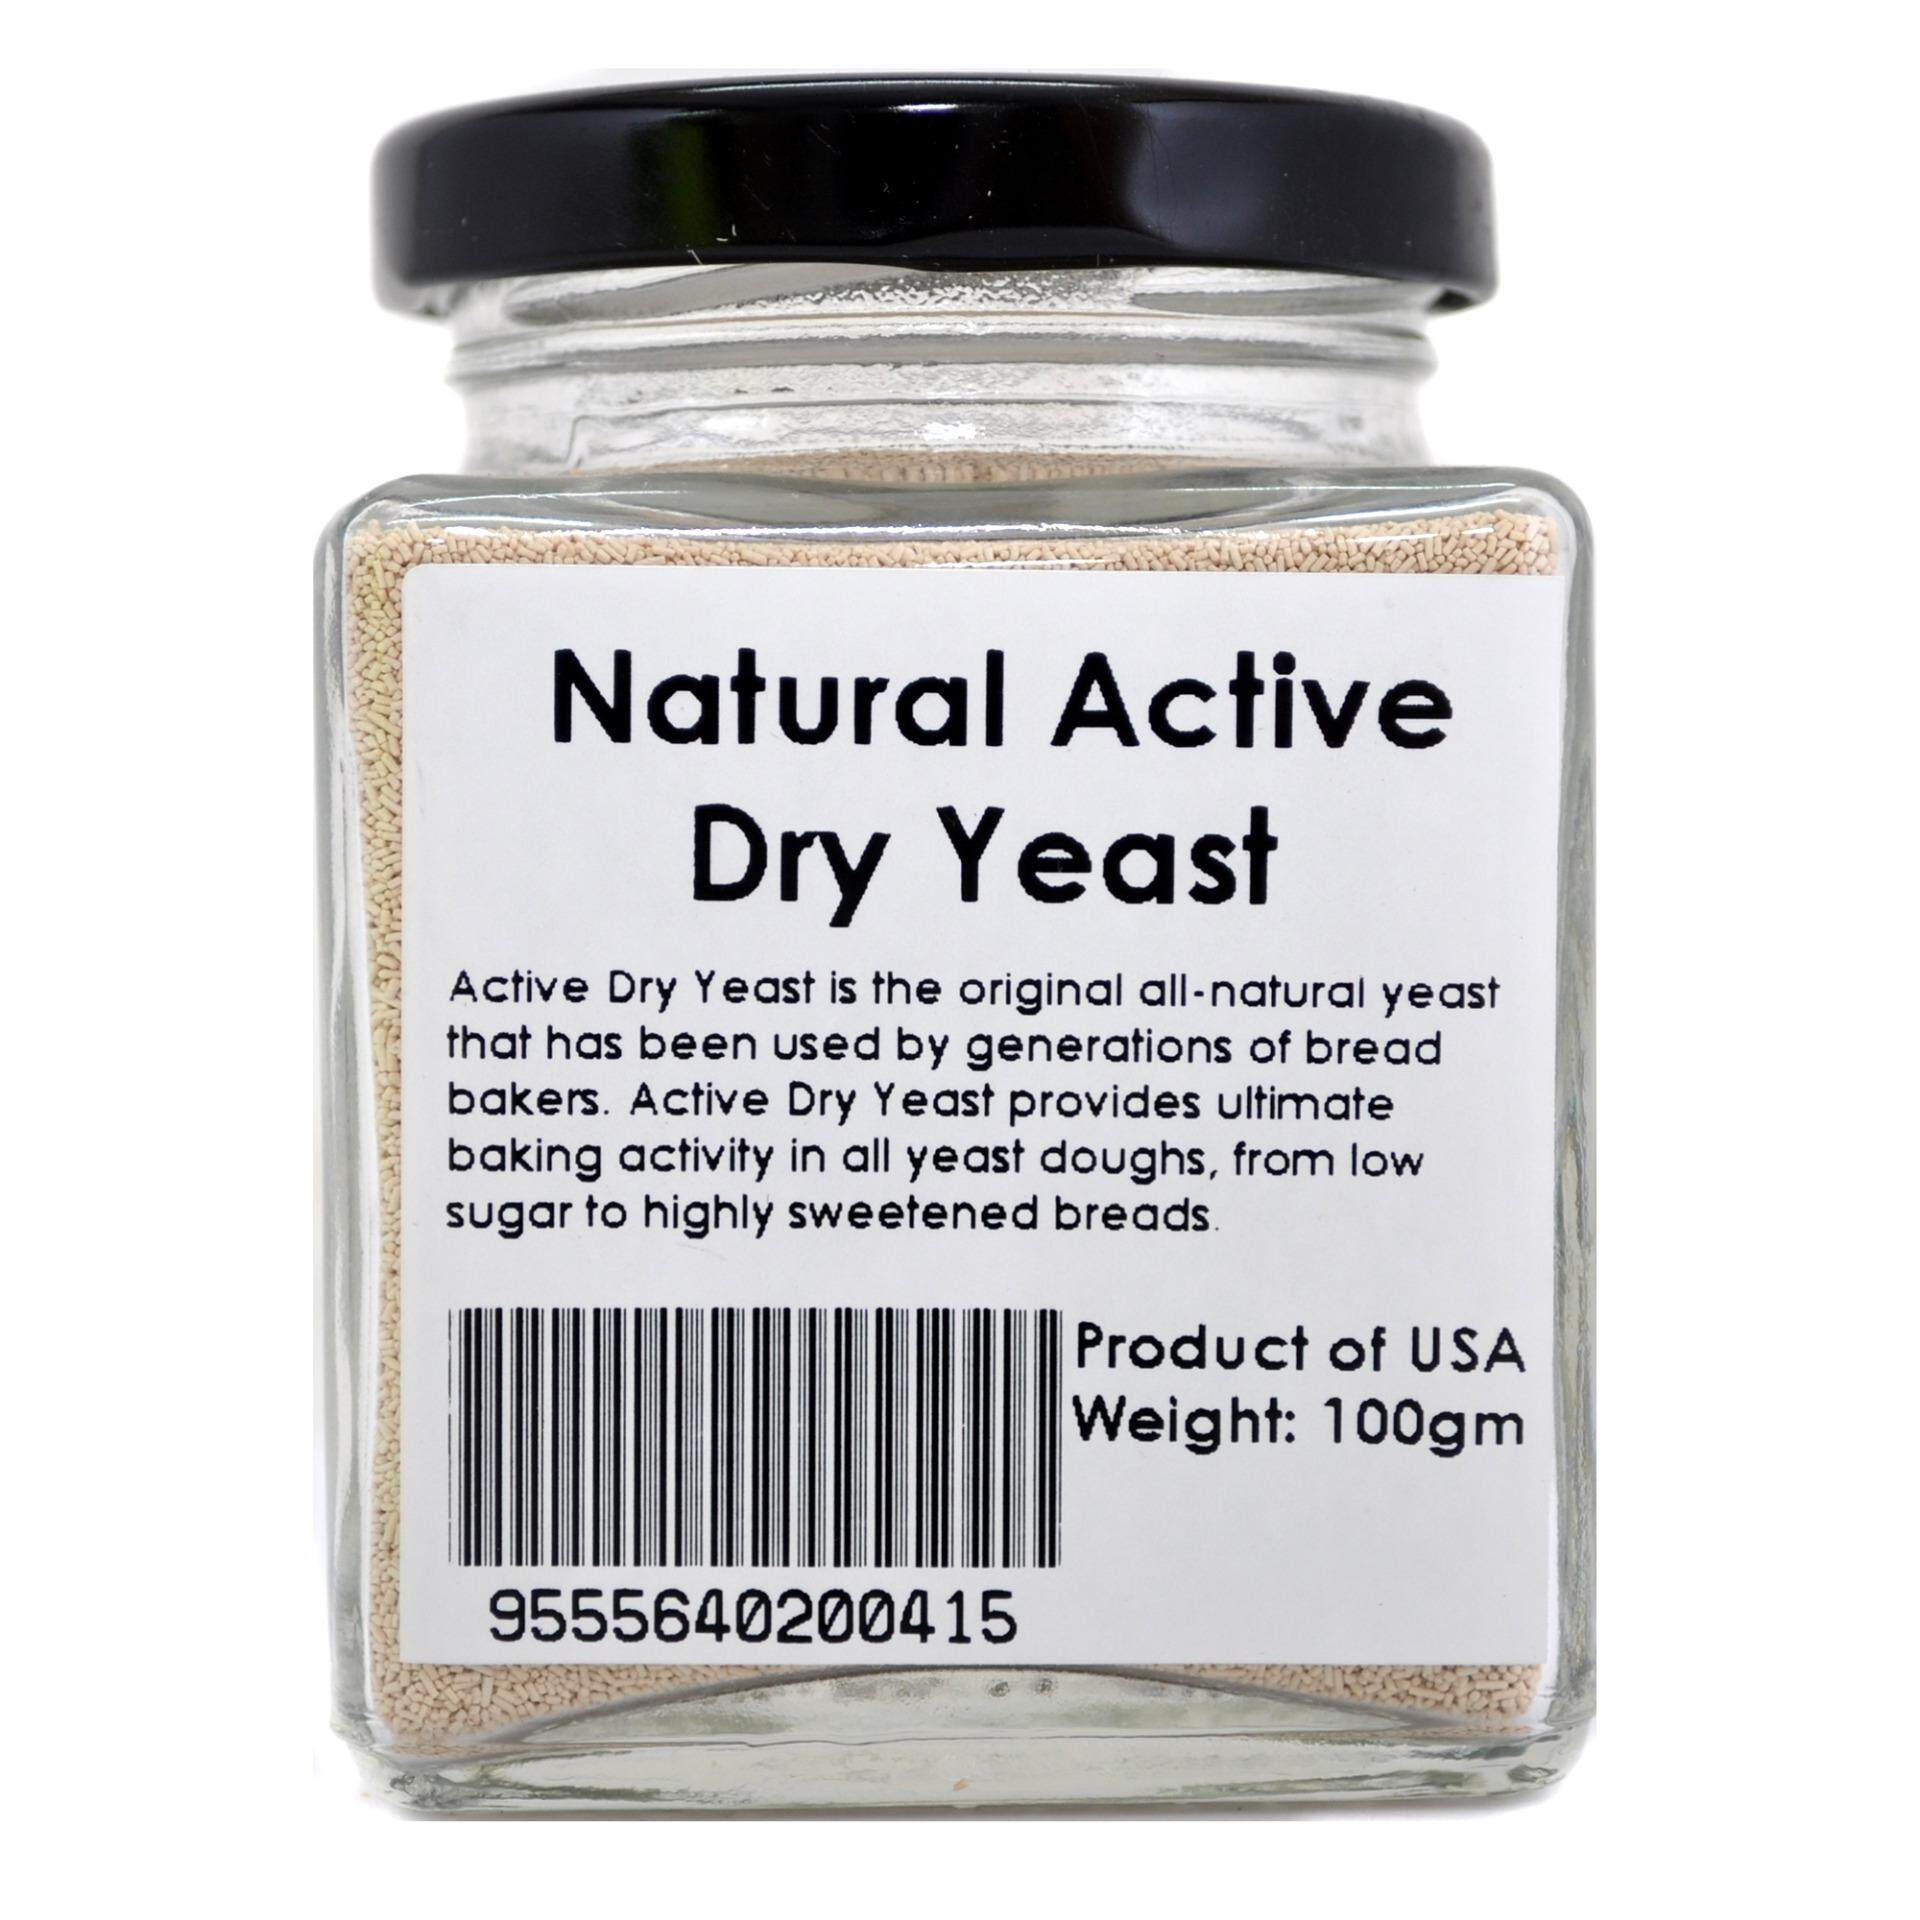 OPIKA Natural Active Dry Yeast 100g